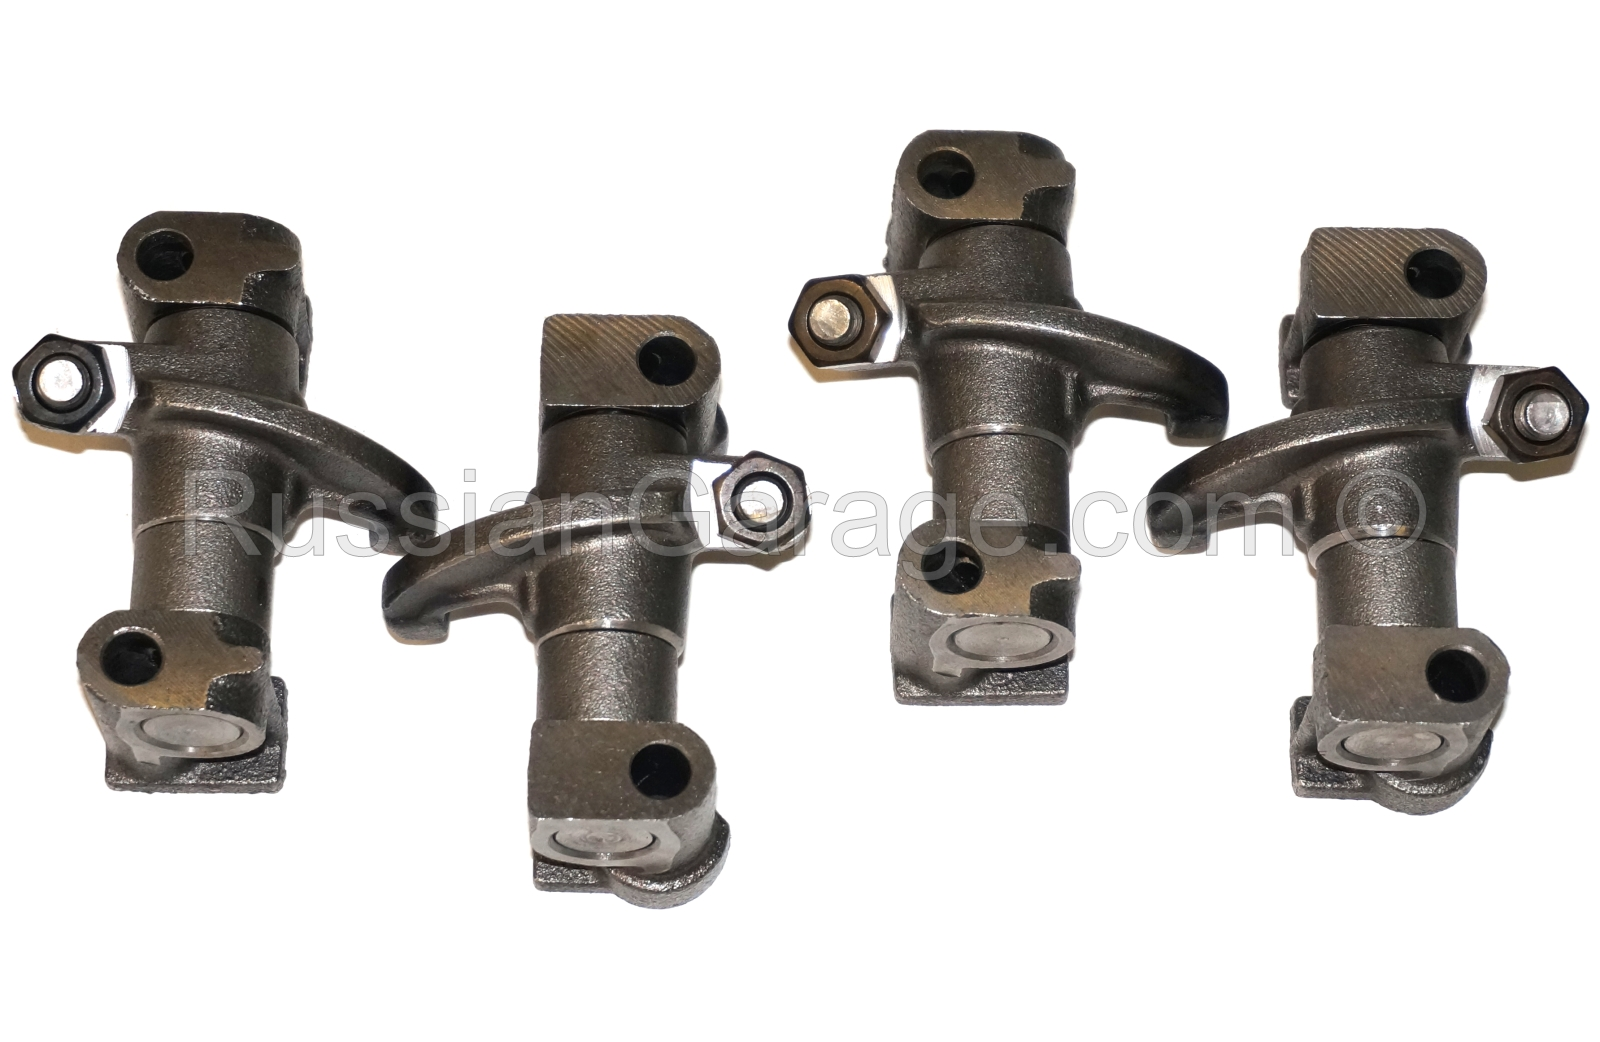 Rocker arms (two cylinder heads) assy URAL 650cc